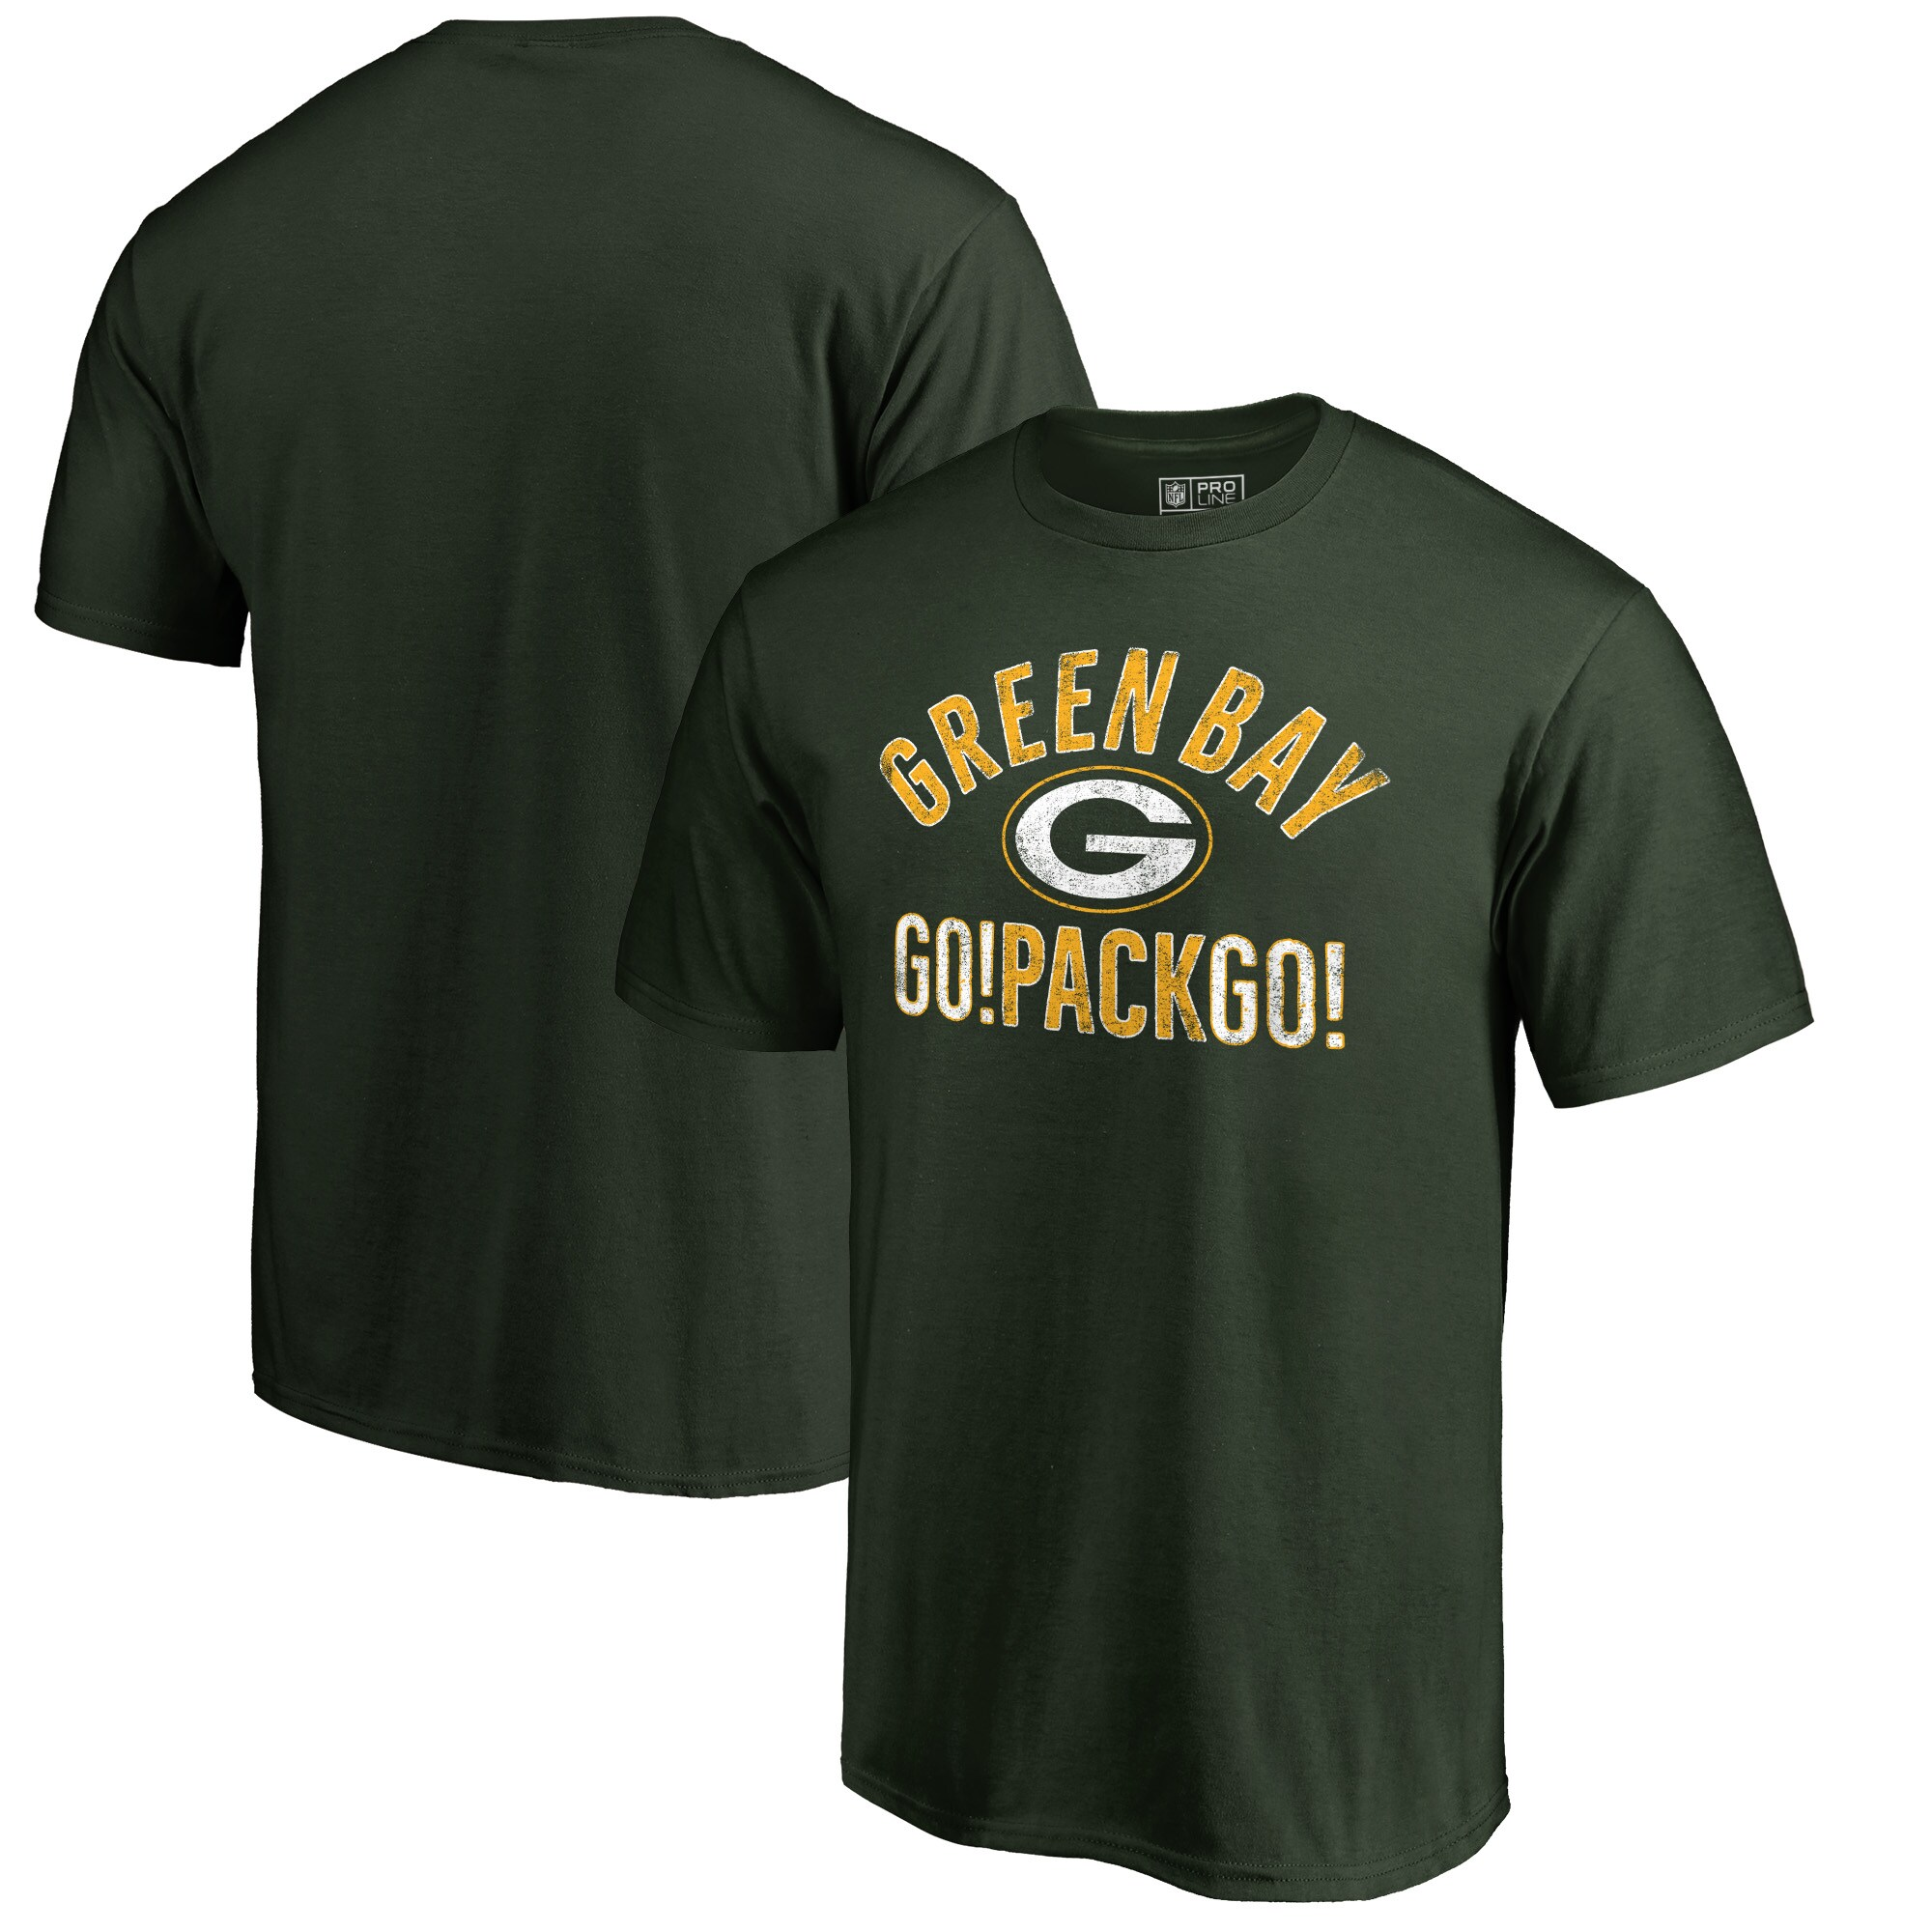 Green Bay Packers NFL Pro Line by Fanatics Branded Hometown Collection T-Shirt - Green